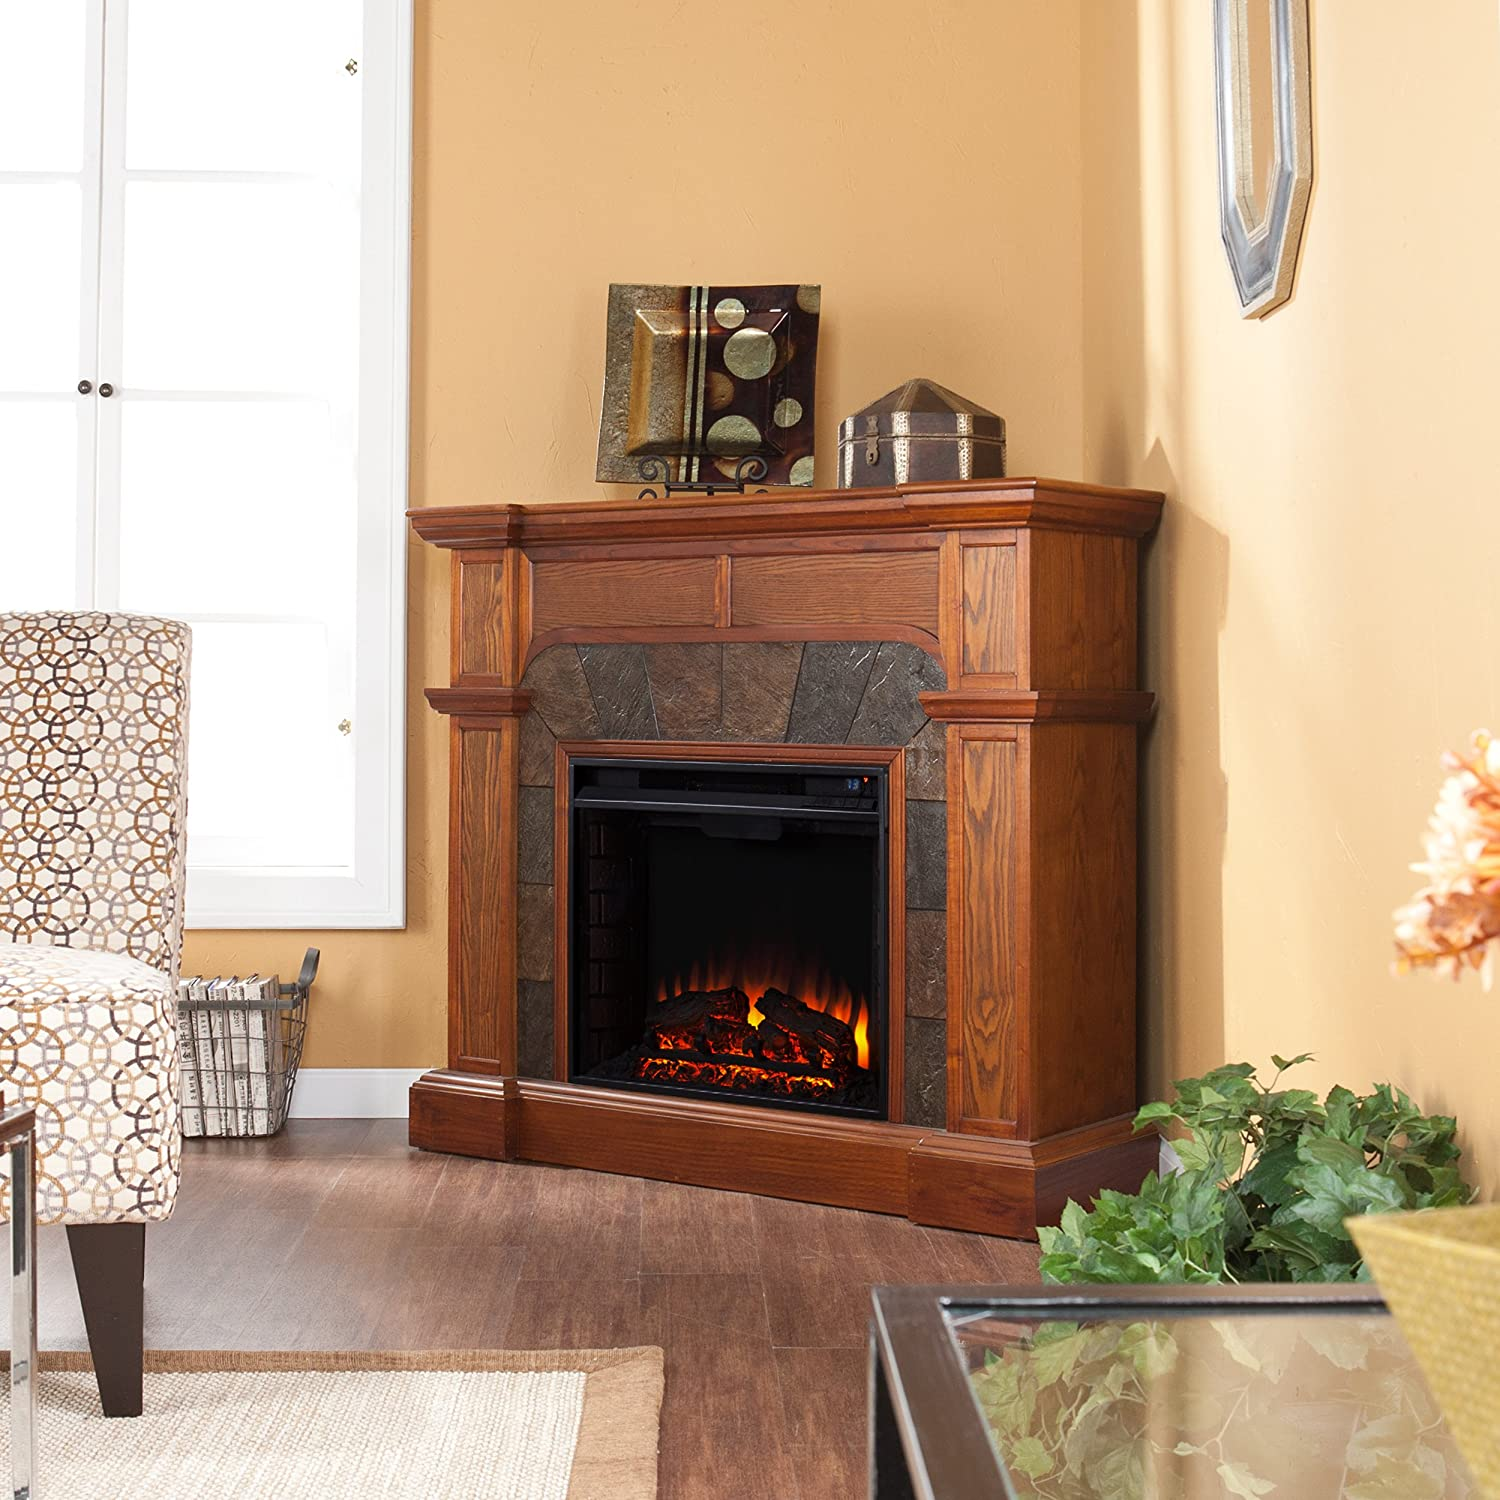 Amazon.com: Cartwright Convertible Electric Fireplace - Mission Oak:  Kitchen & Dining - Amazon.com: Cartwright Convertible Electric Fireplace - Mission